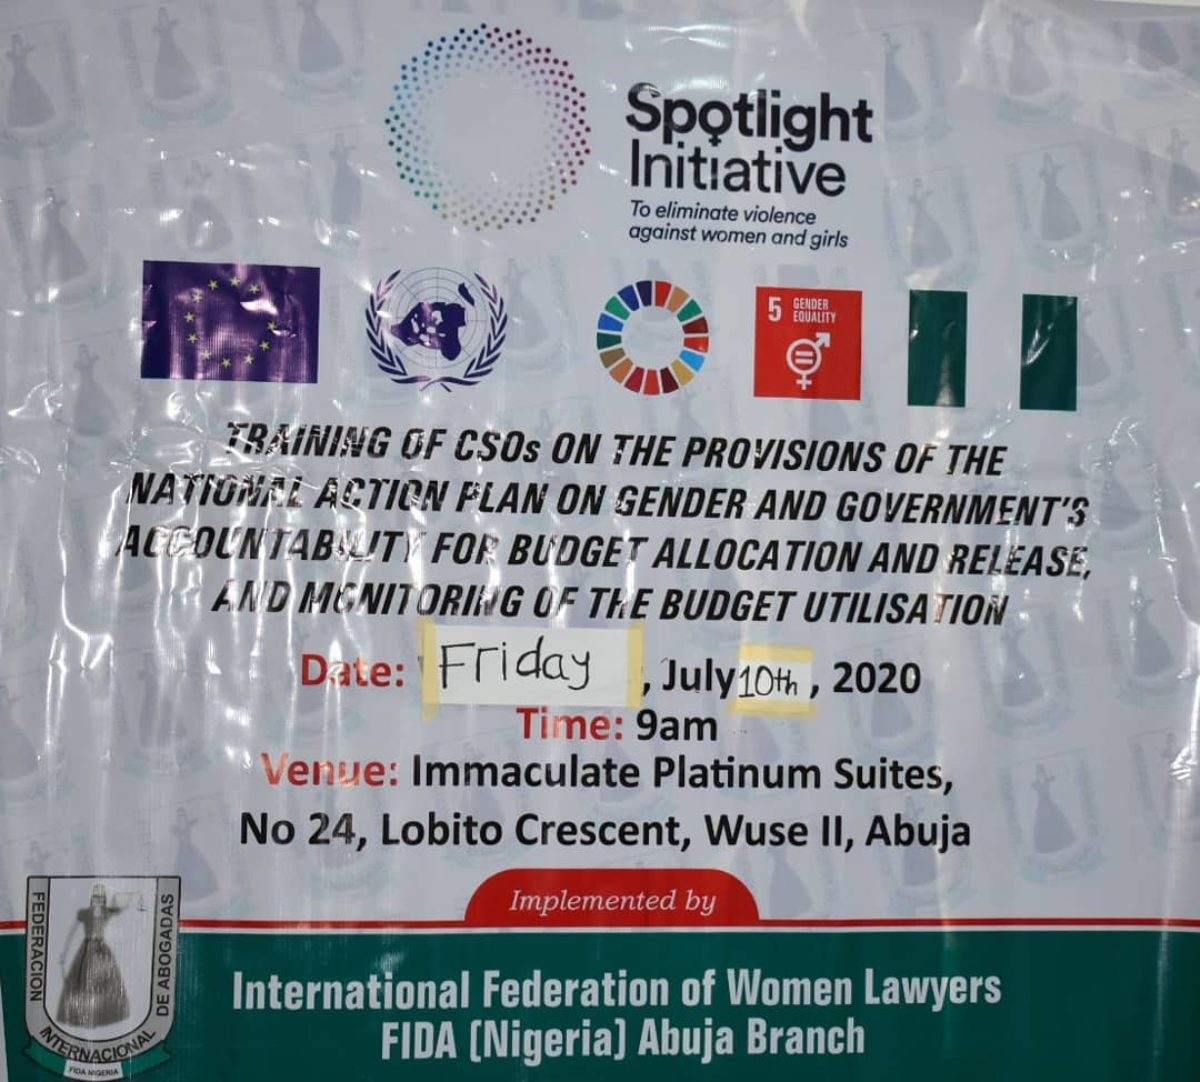 FIDA Nigeria in collaboration with the Spotlight Initiative host a training of CSOs on the provisions of National Action Plan on Gender in the FCT